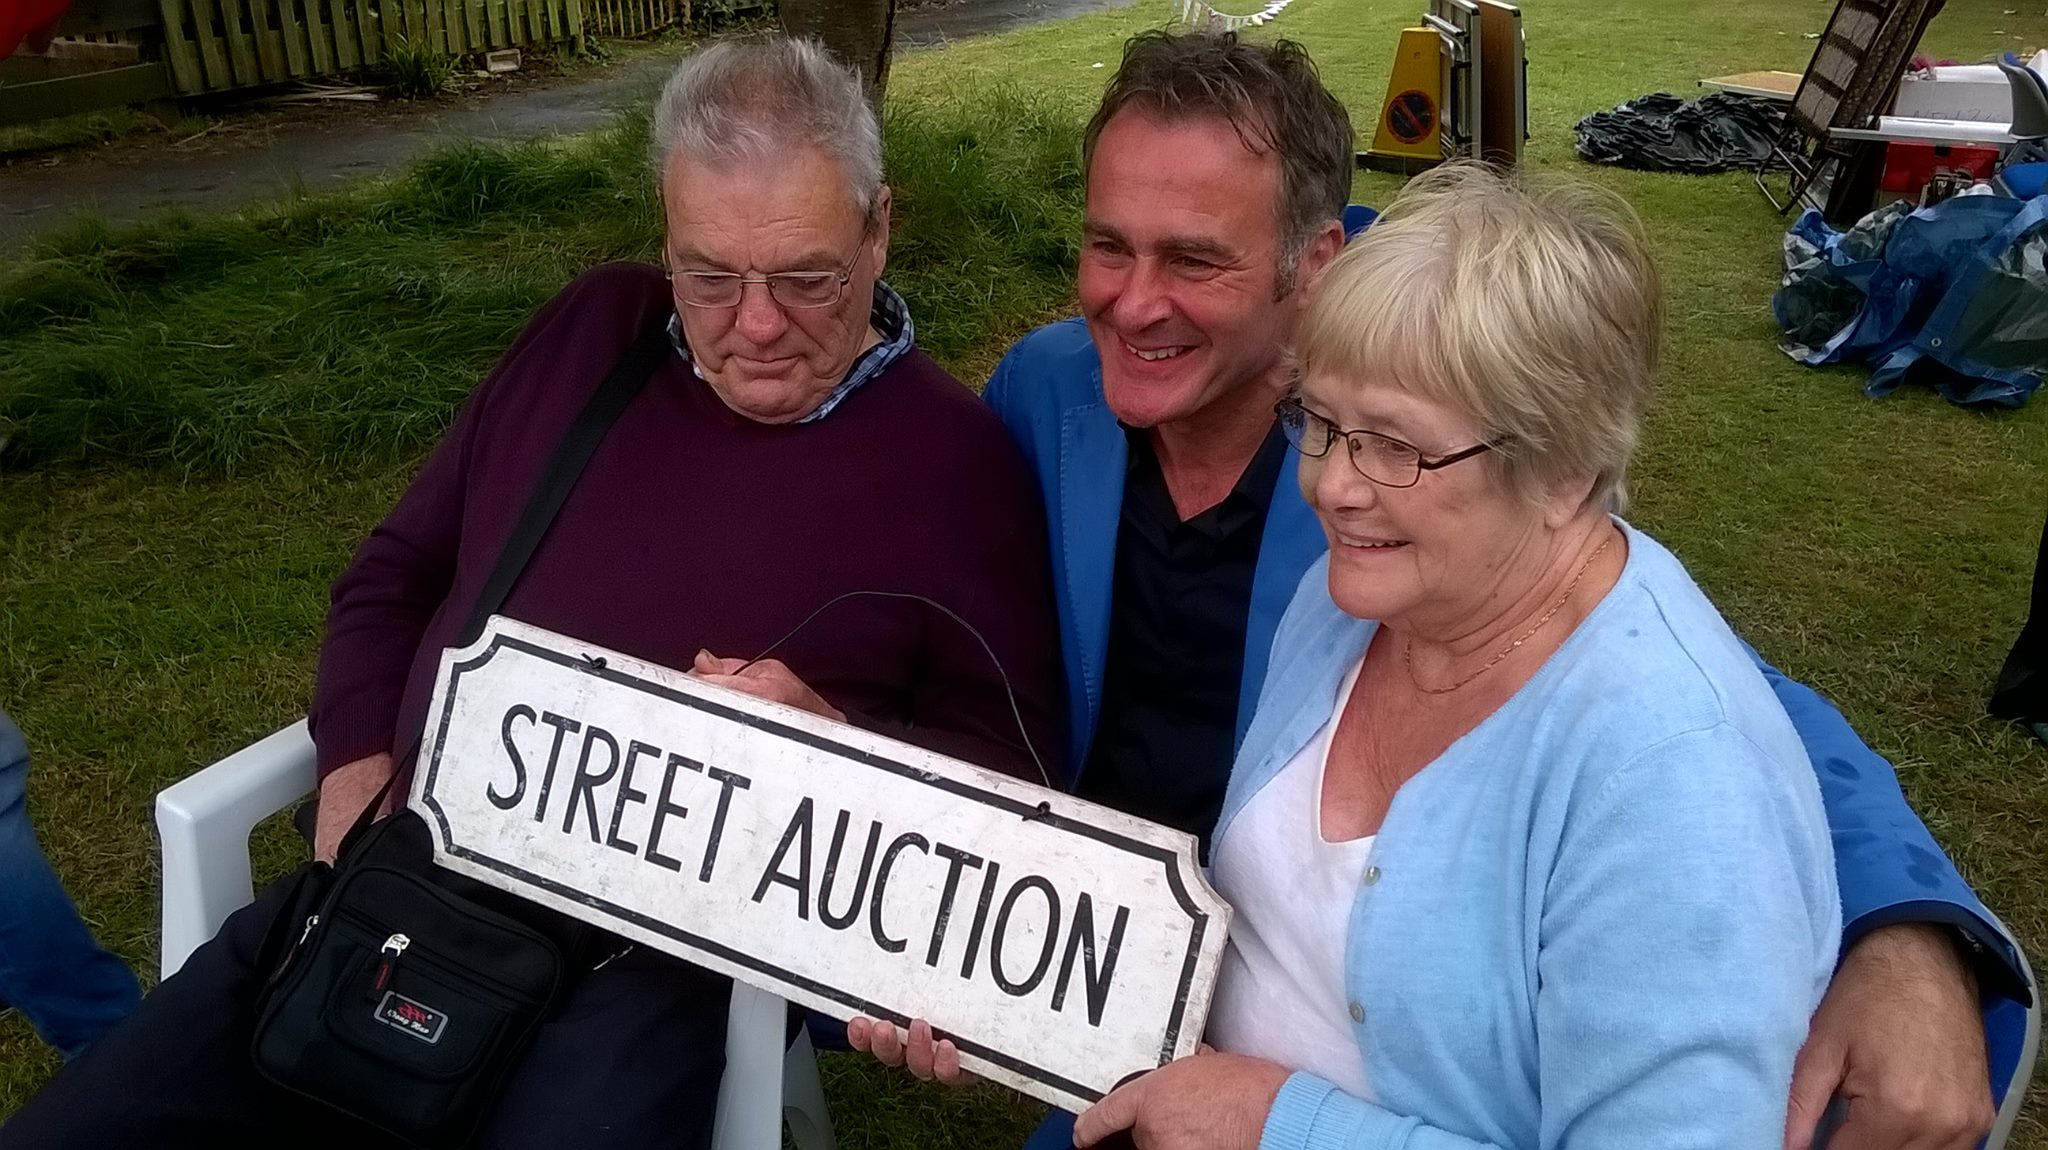 BBC STREET AUCTION